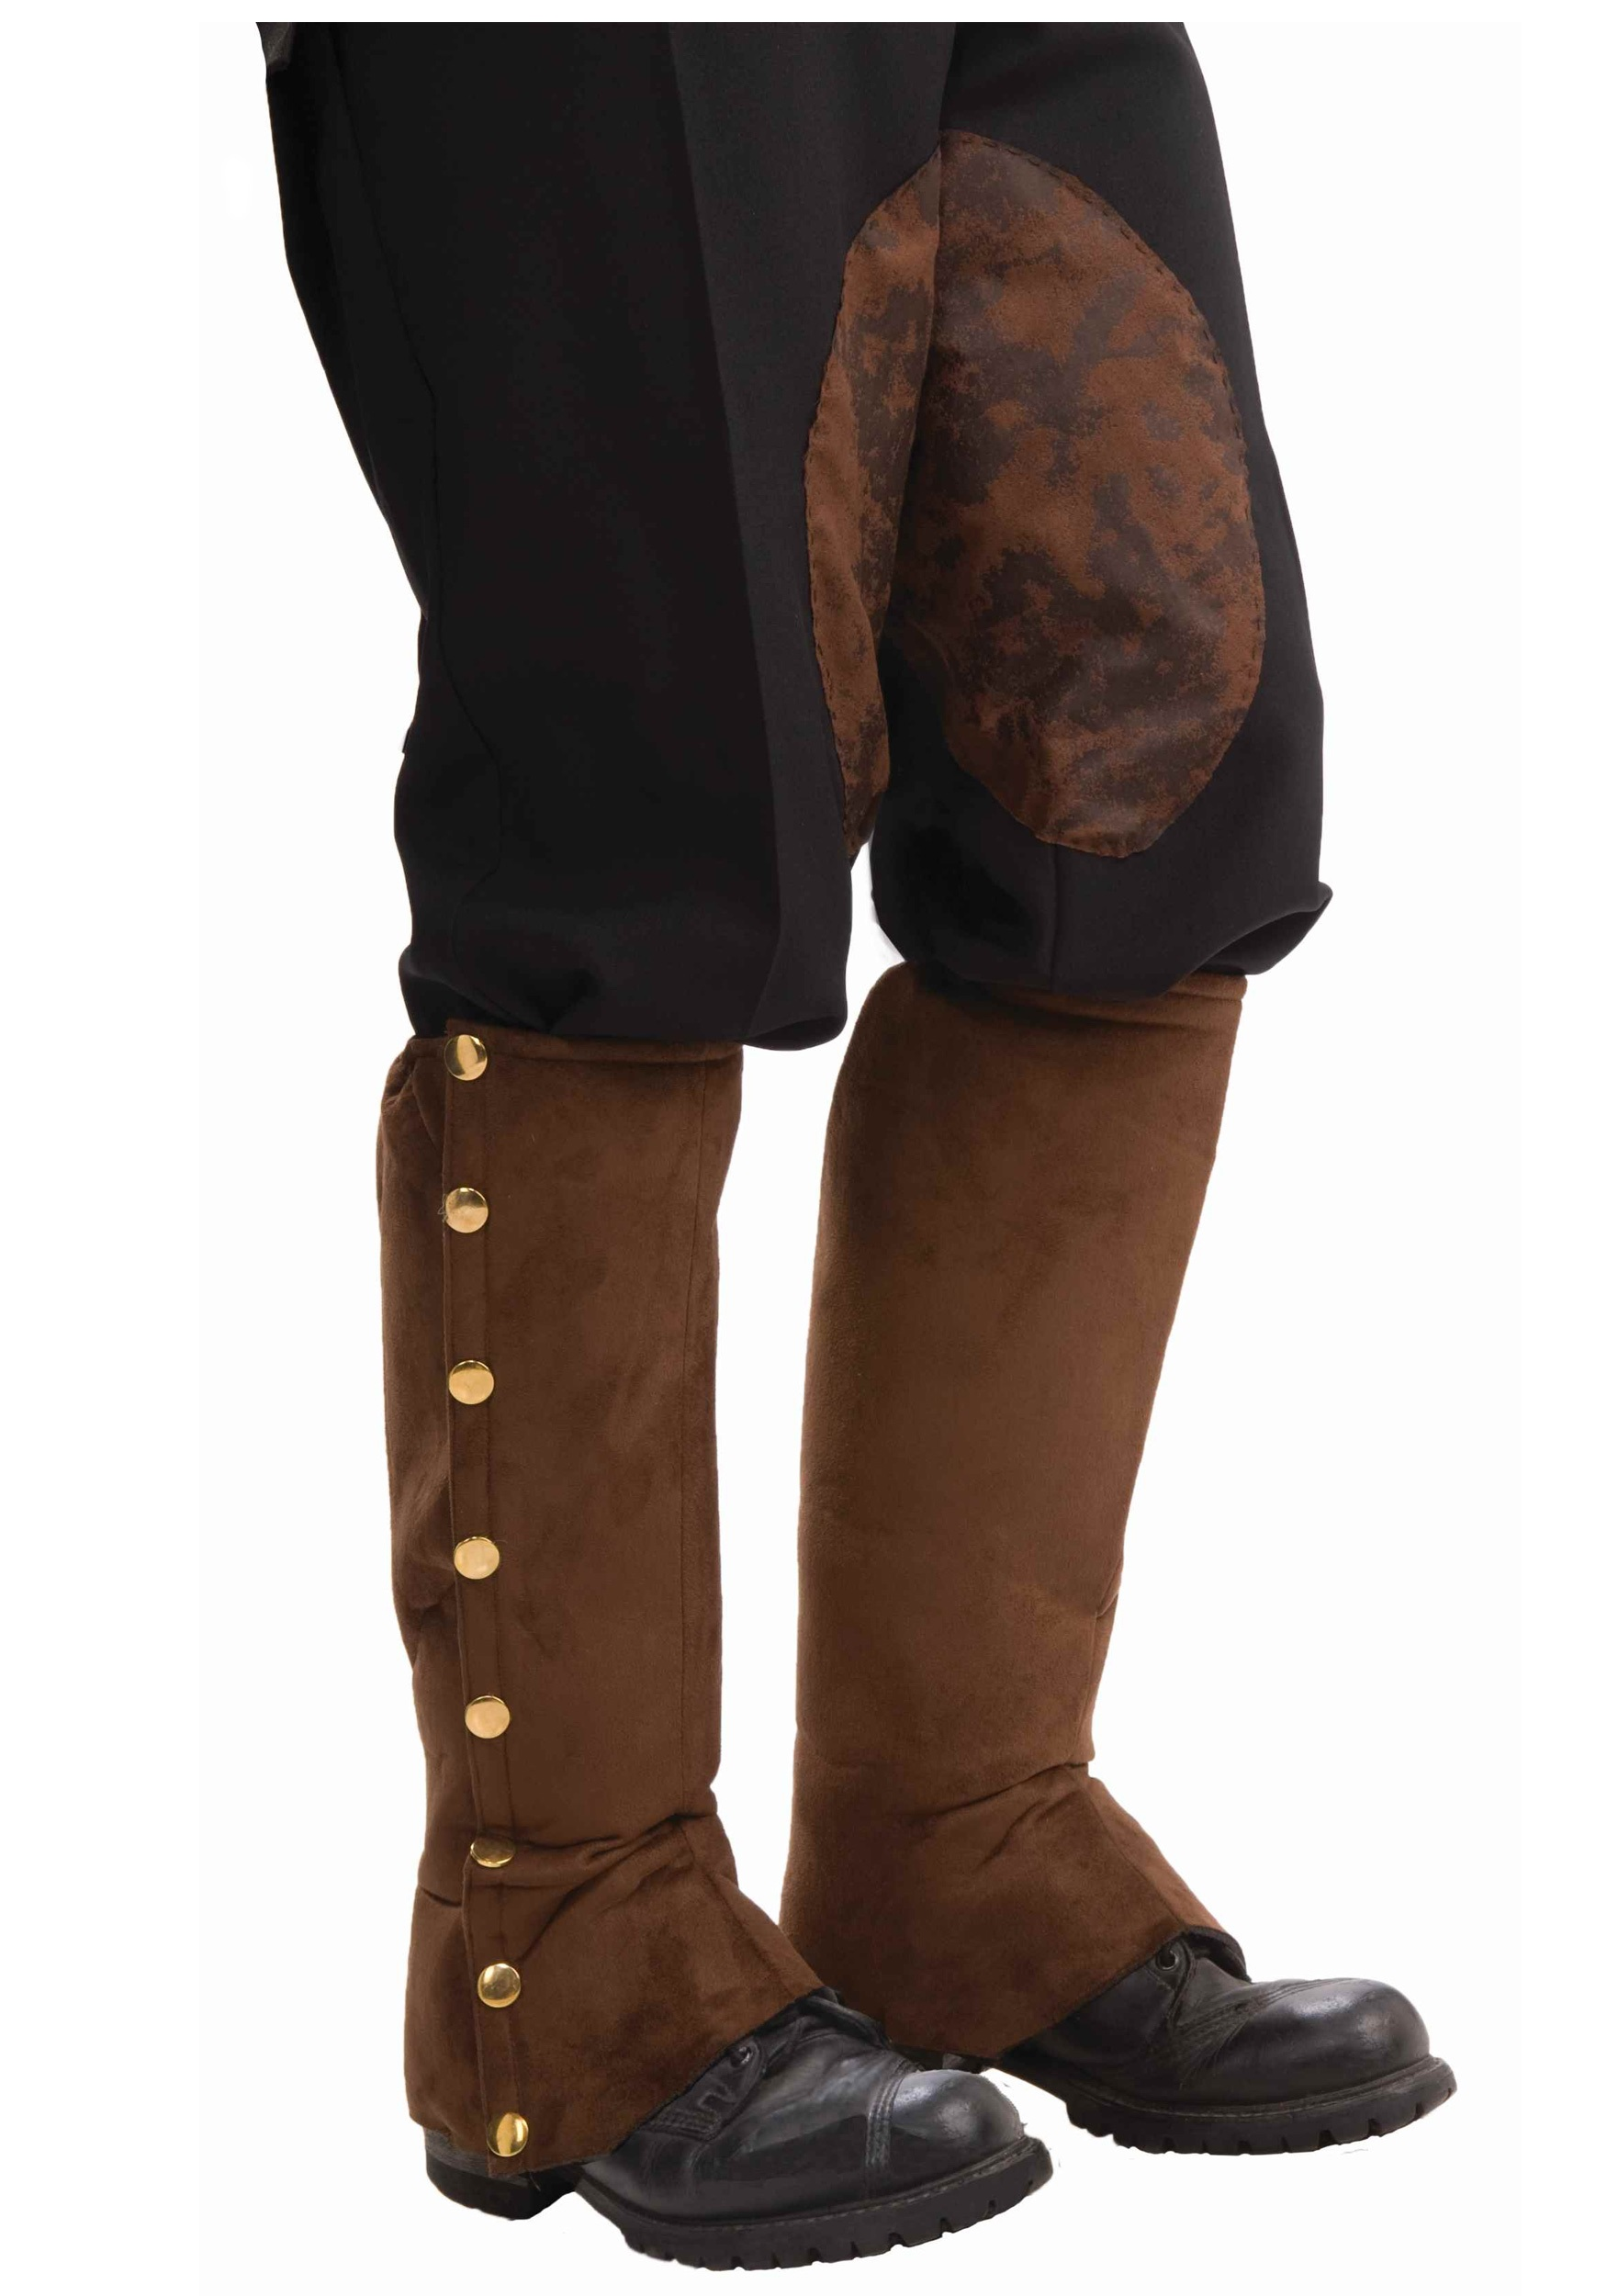 Steampunk Suede Shoe Spats